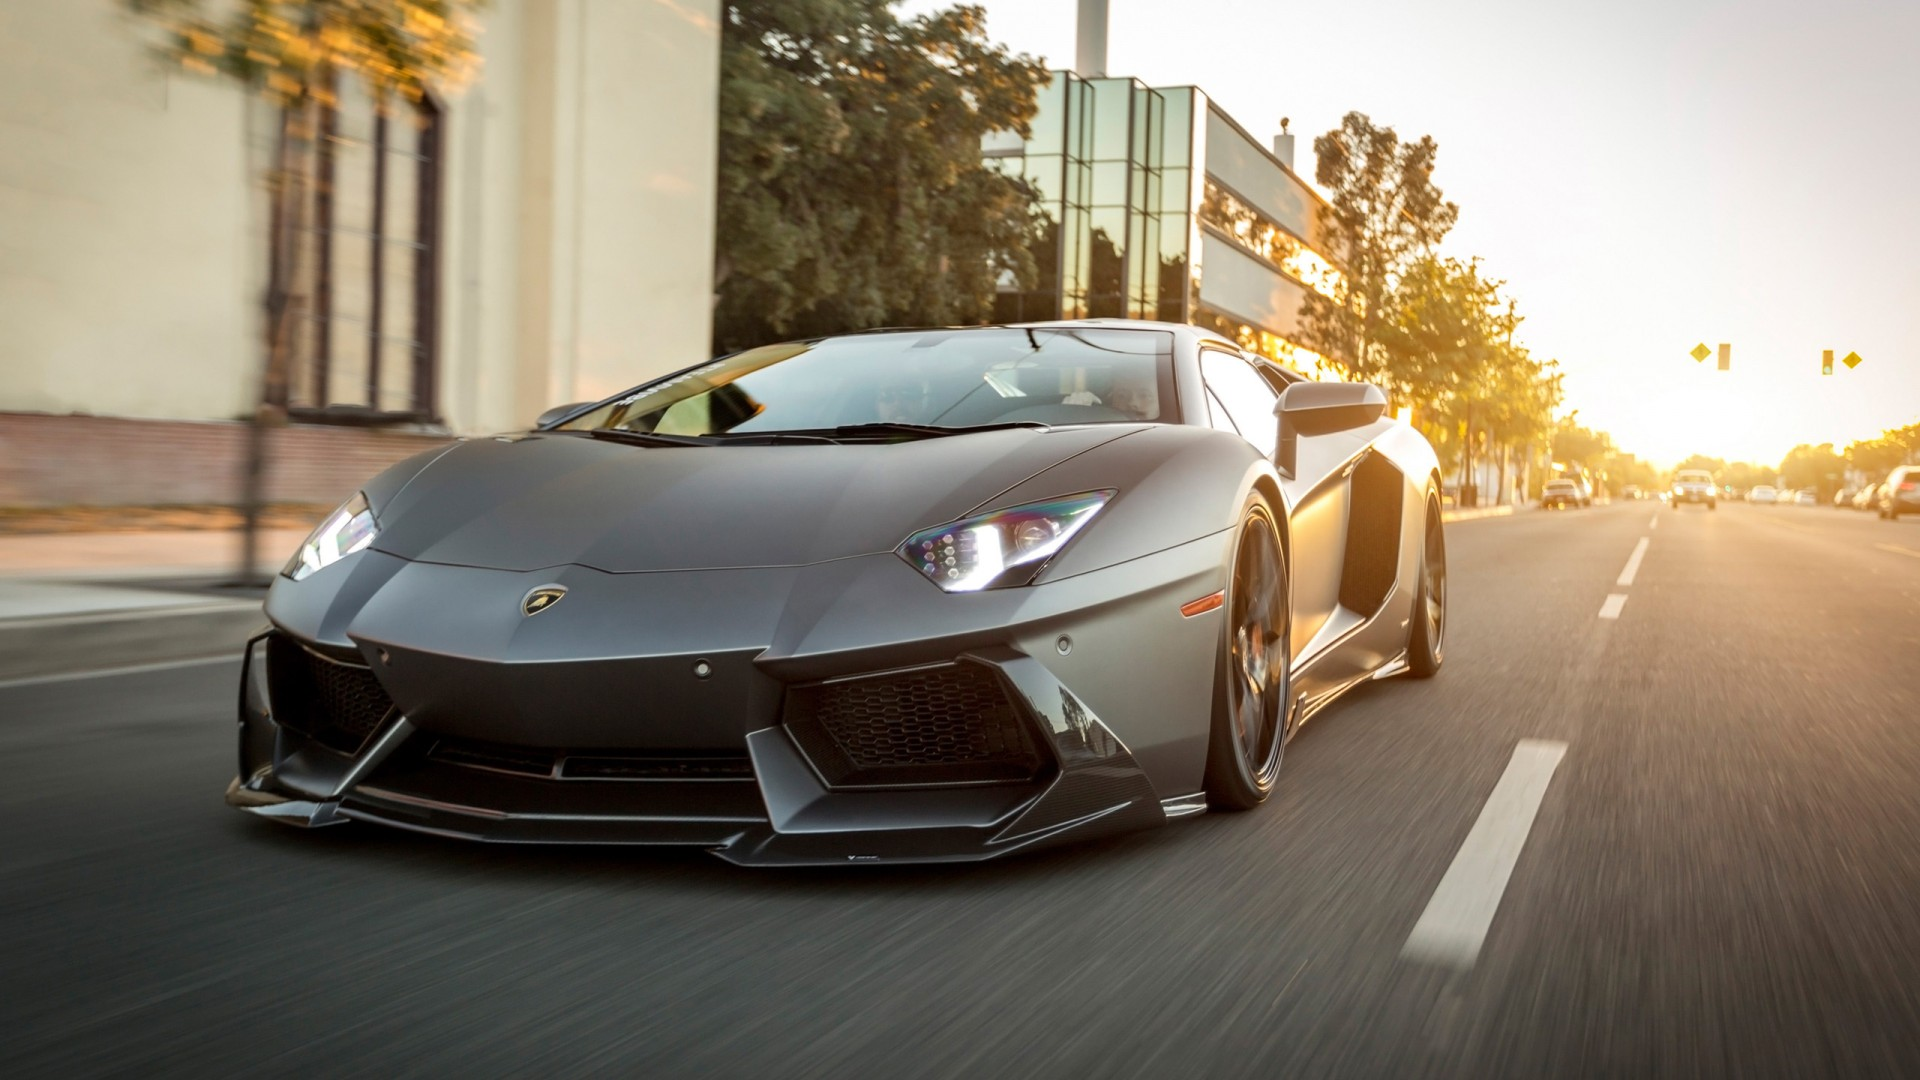 Lamborghini Aventador Cars Wallpapers Fondos De Pantalla De Lamborghini Wallpapers Hd Gratis